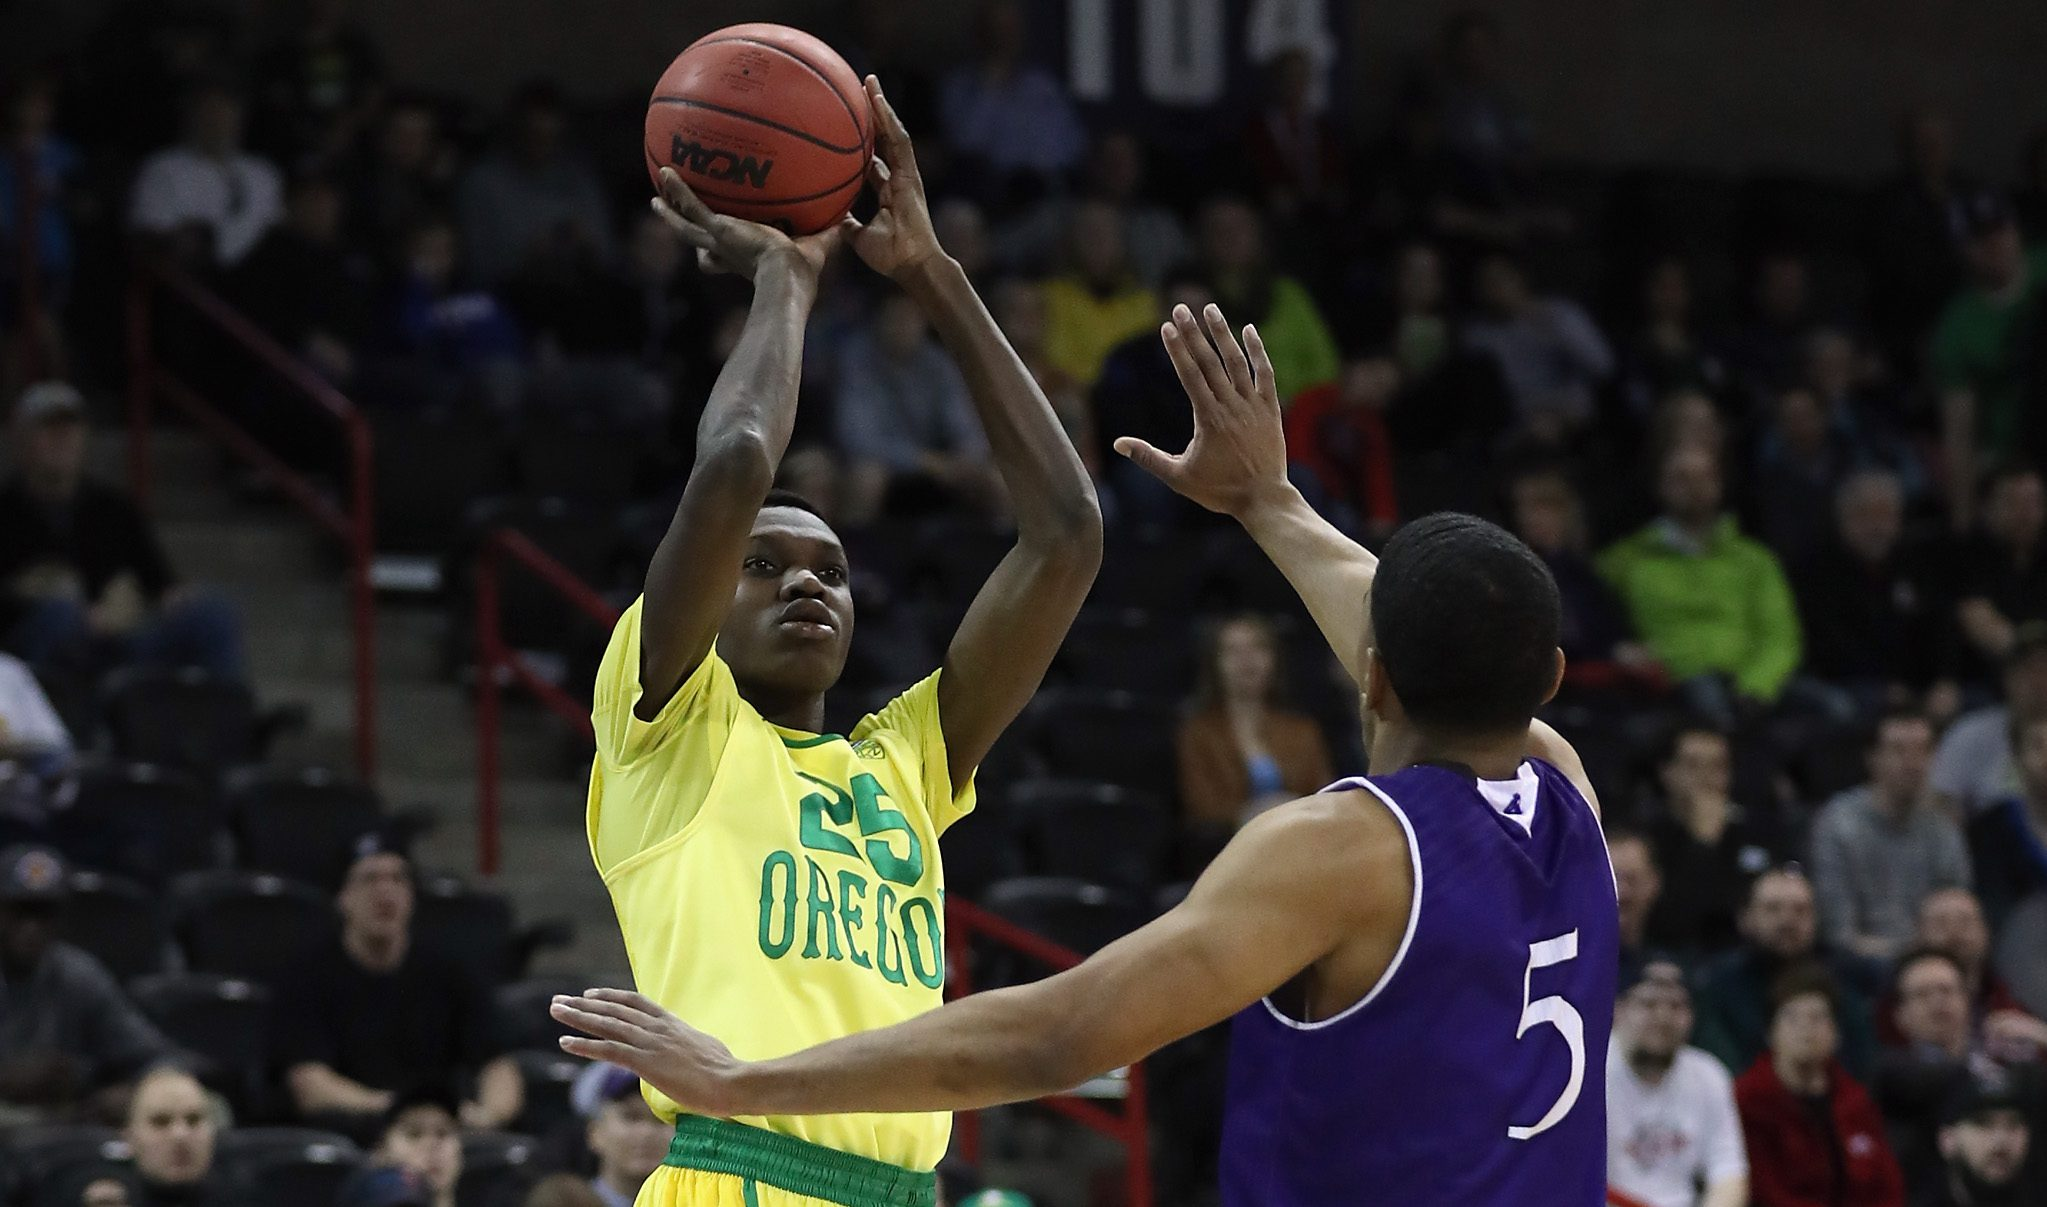 SPOKANE, WA - MARCH 18: Chris Boucher #25 of the Oregon Ducks shoots against Cullen Hamilton #5 of the Holy Cross Crusaders in the first half during the first round of the 2016 NCAA Men's Basketball Tournament at Spokane Veterans Memorial Arena on March 18, 2016 in Spokane, Washington. (Photo by Ezra Shaw/Getty Images)